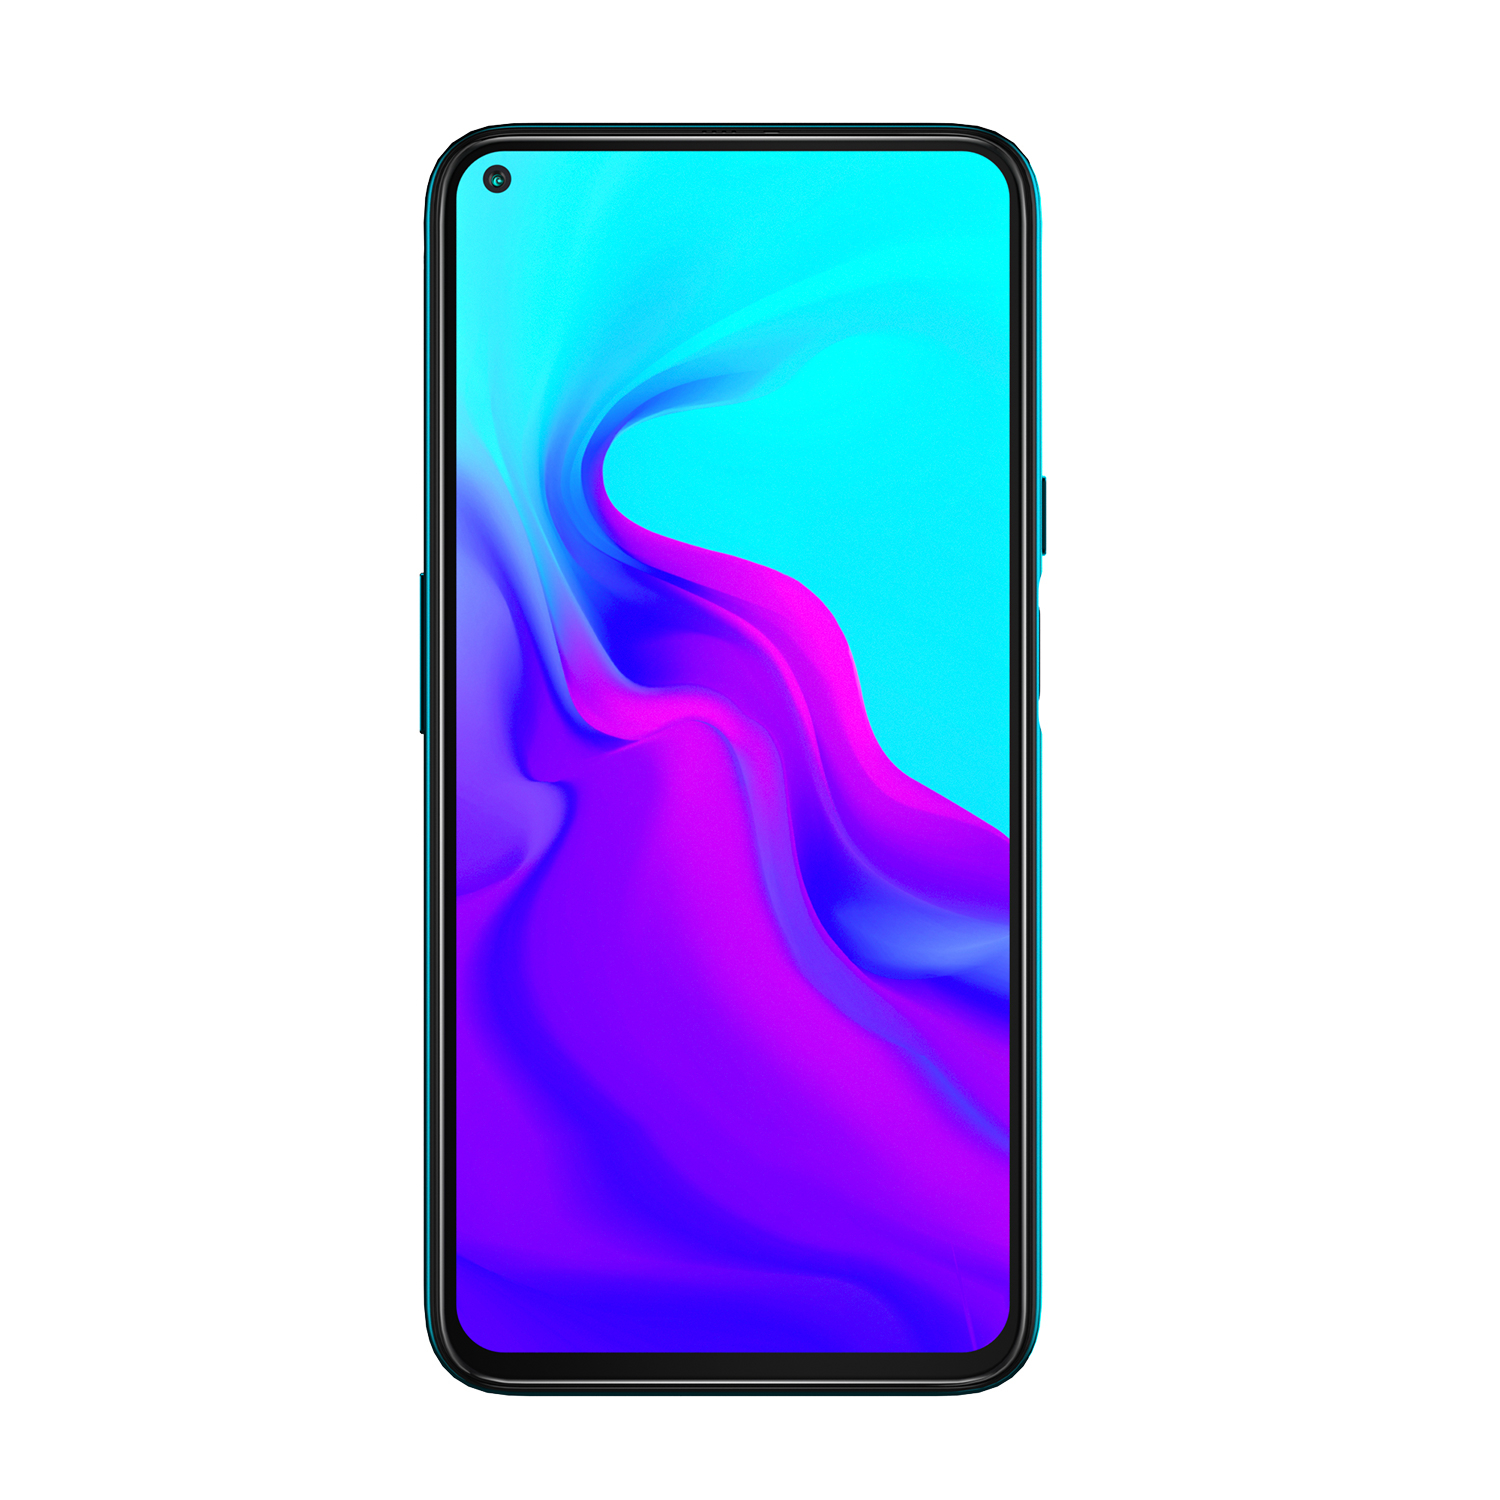 "Telefon CUBOT X30 PRO, 4G, Helio P60, 6.4"" FHD+, 8+256GB, NFC, Android 10, Gradient"